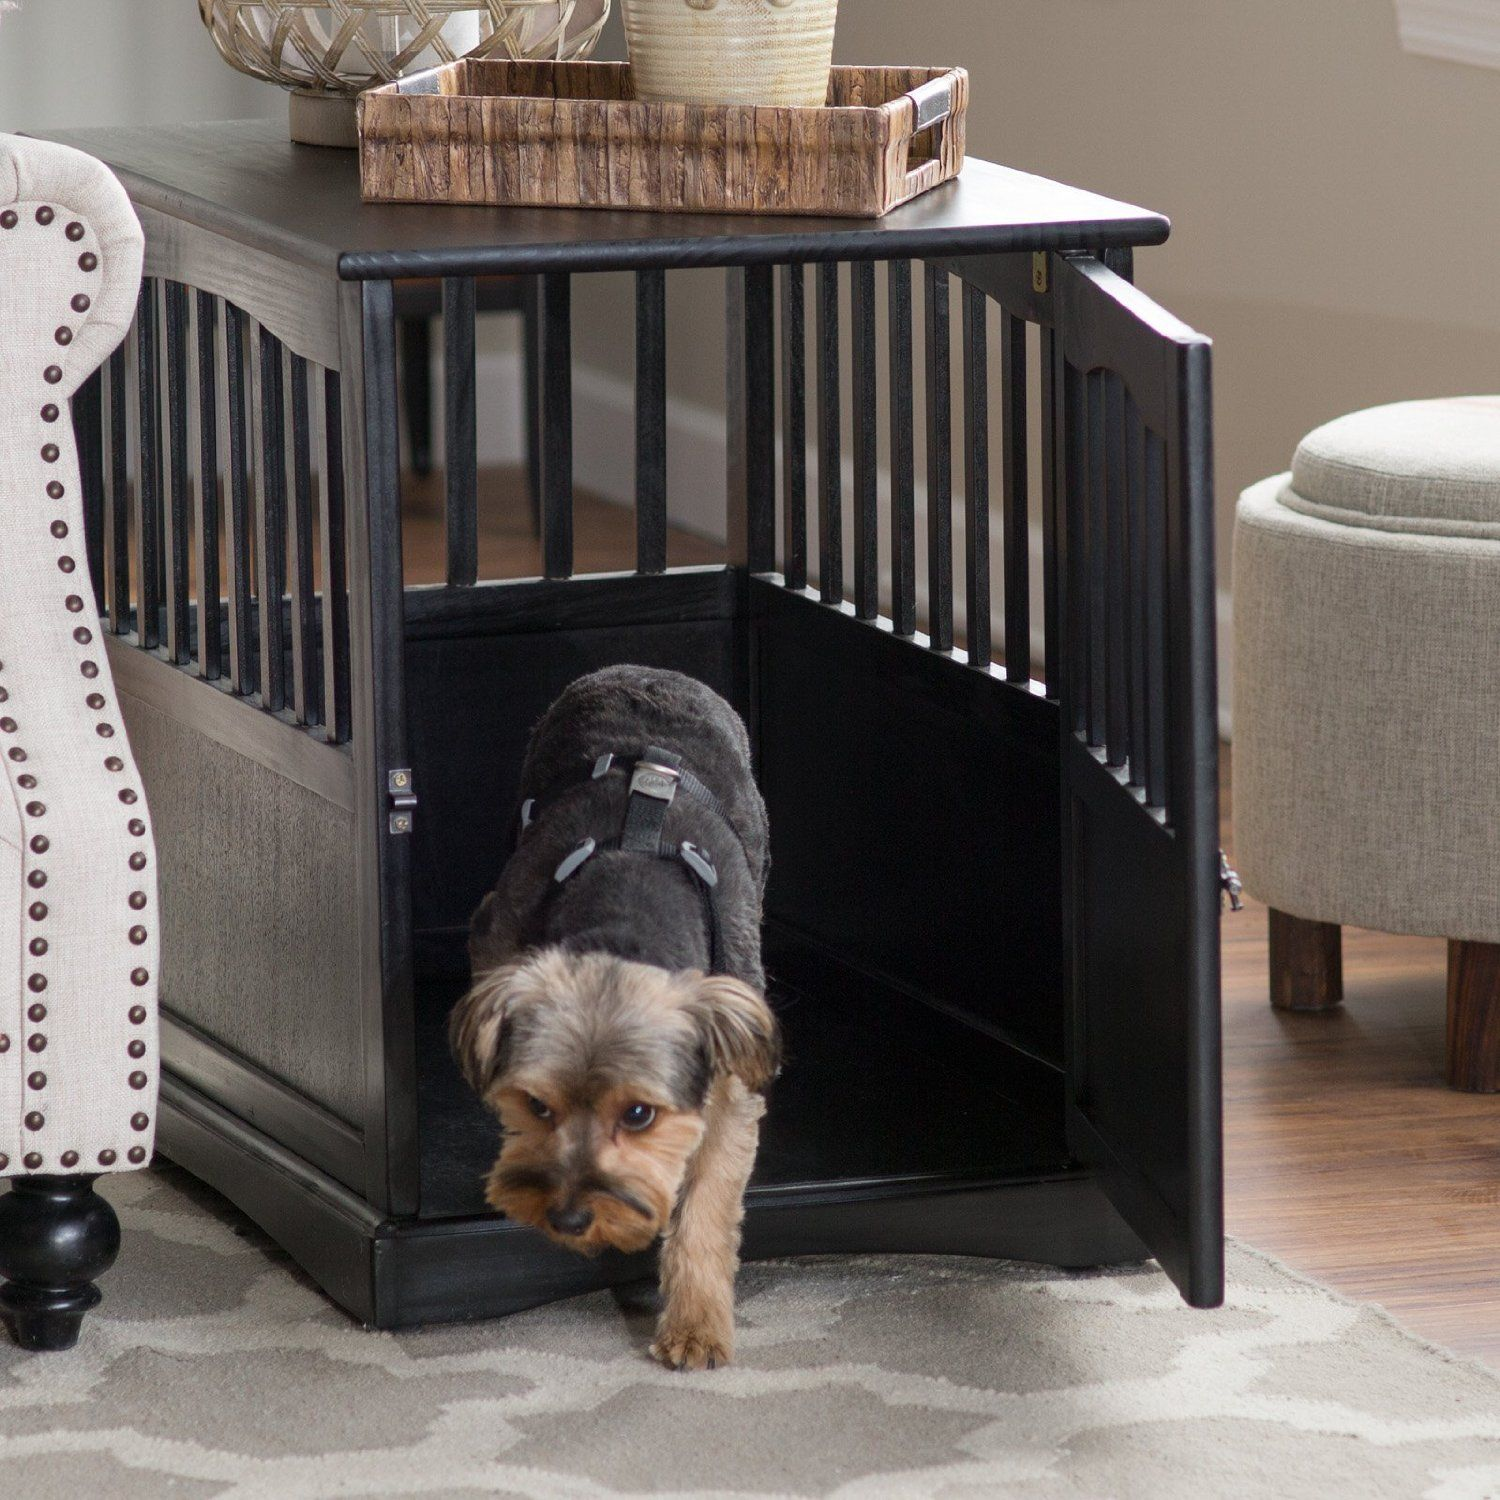 High Quality Buy Indoor Wooden Dog Pet Crate End Table Furniture Espresso Family Room  Bedroom At Online Store